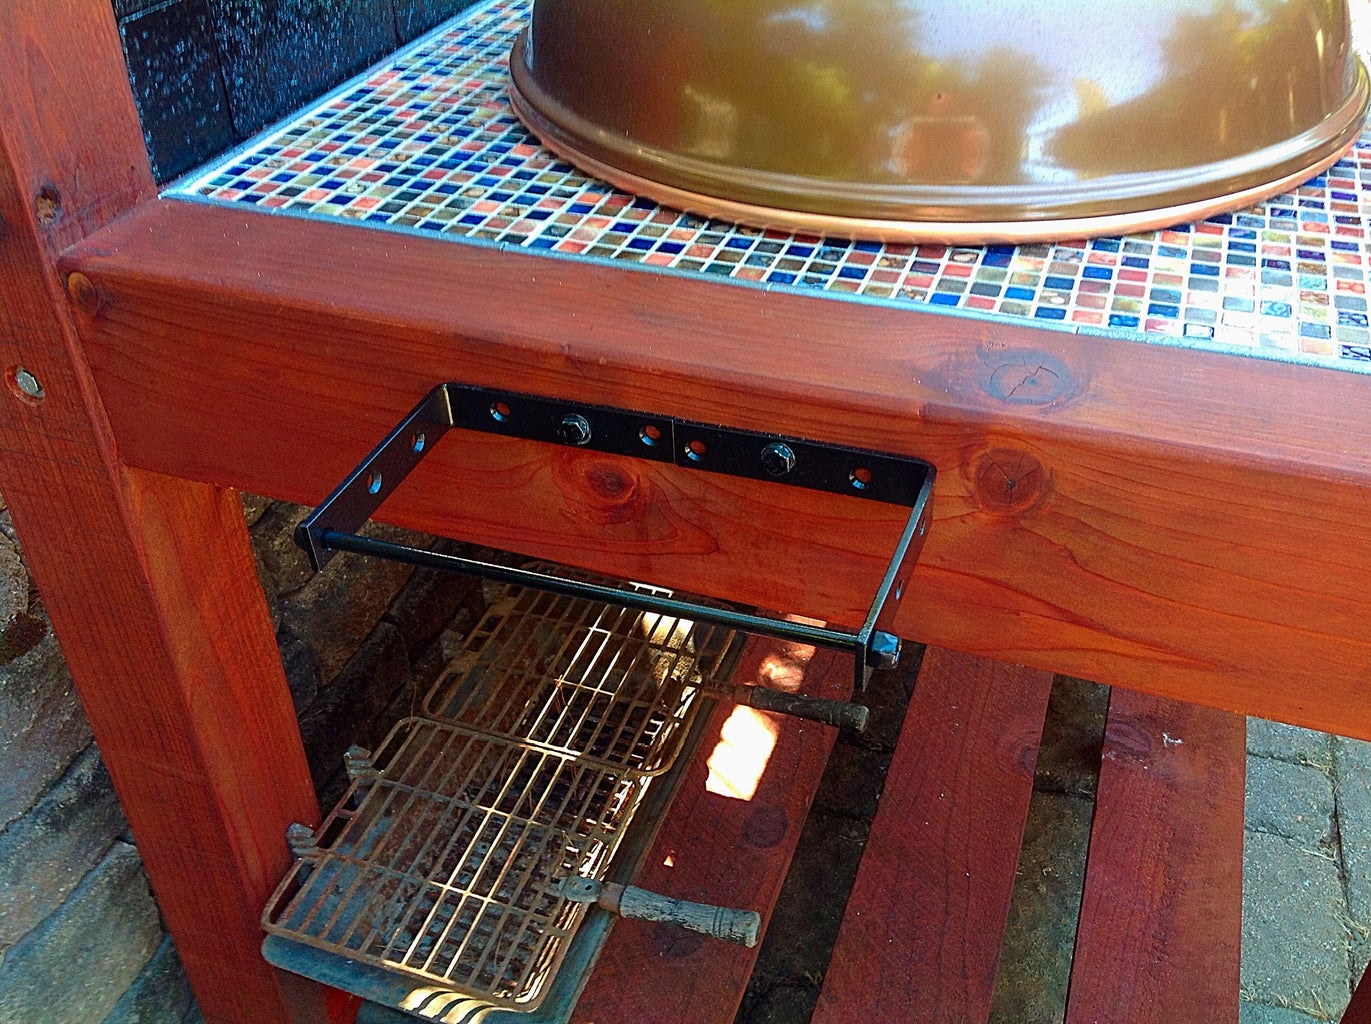 Lid & Towell Rack & Finishing Touches